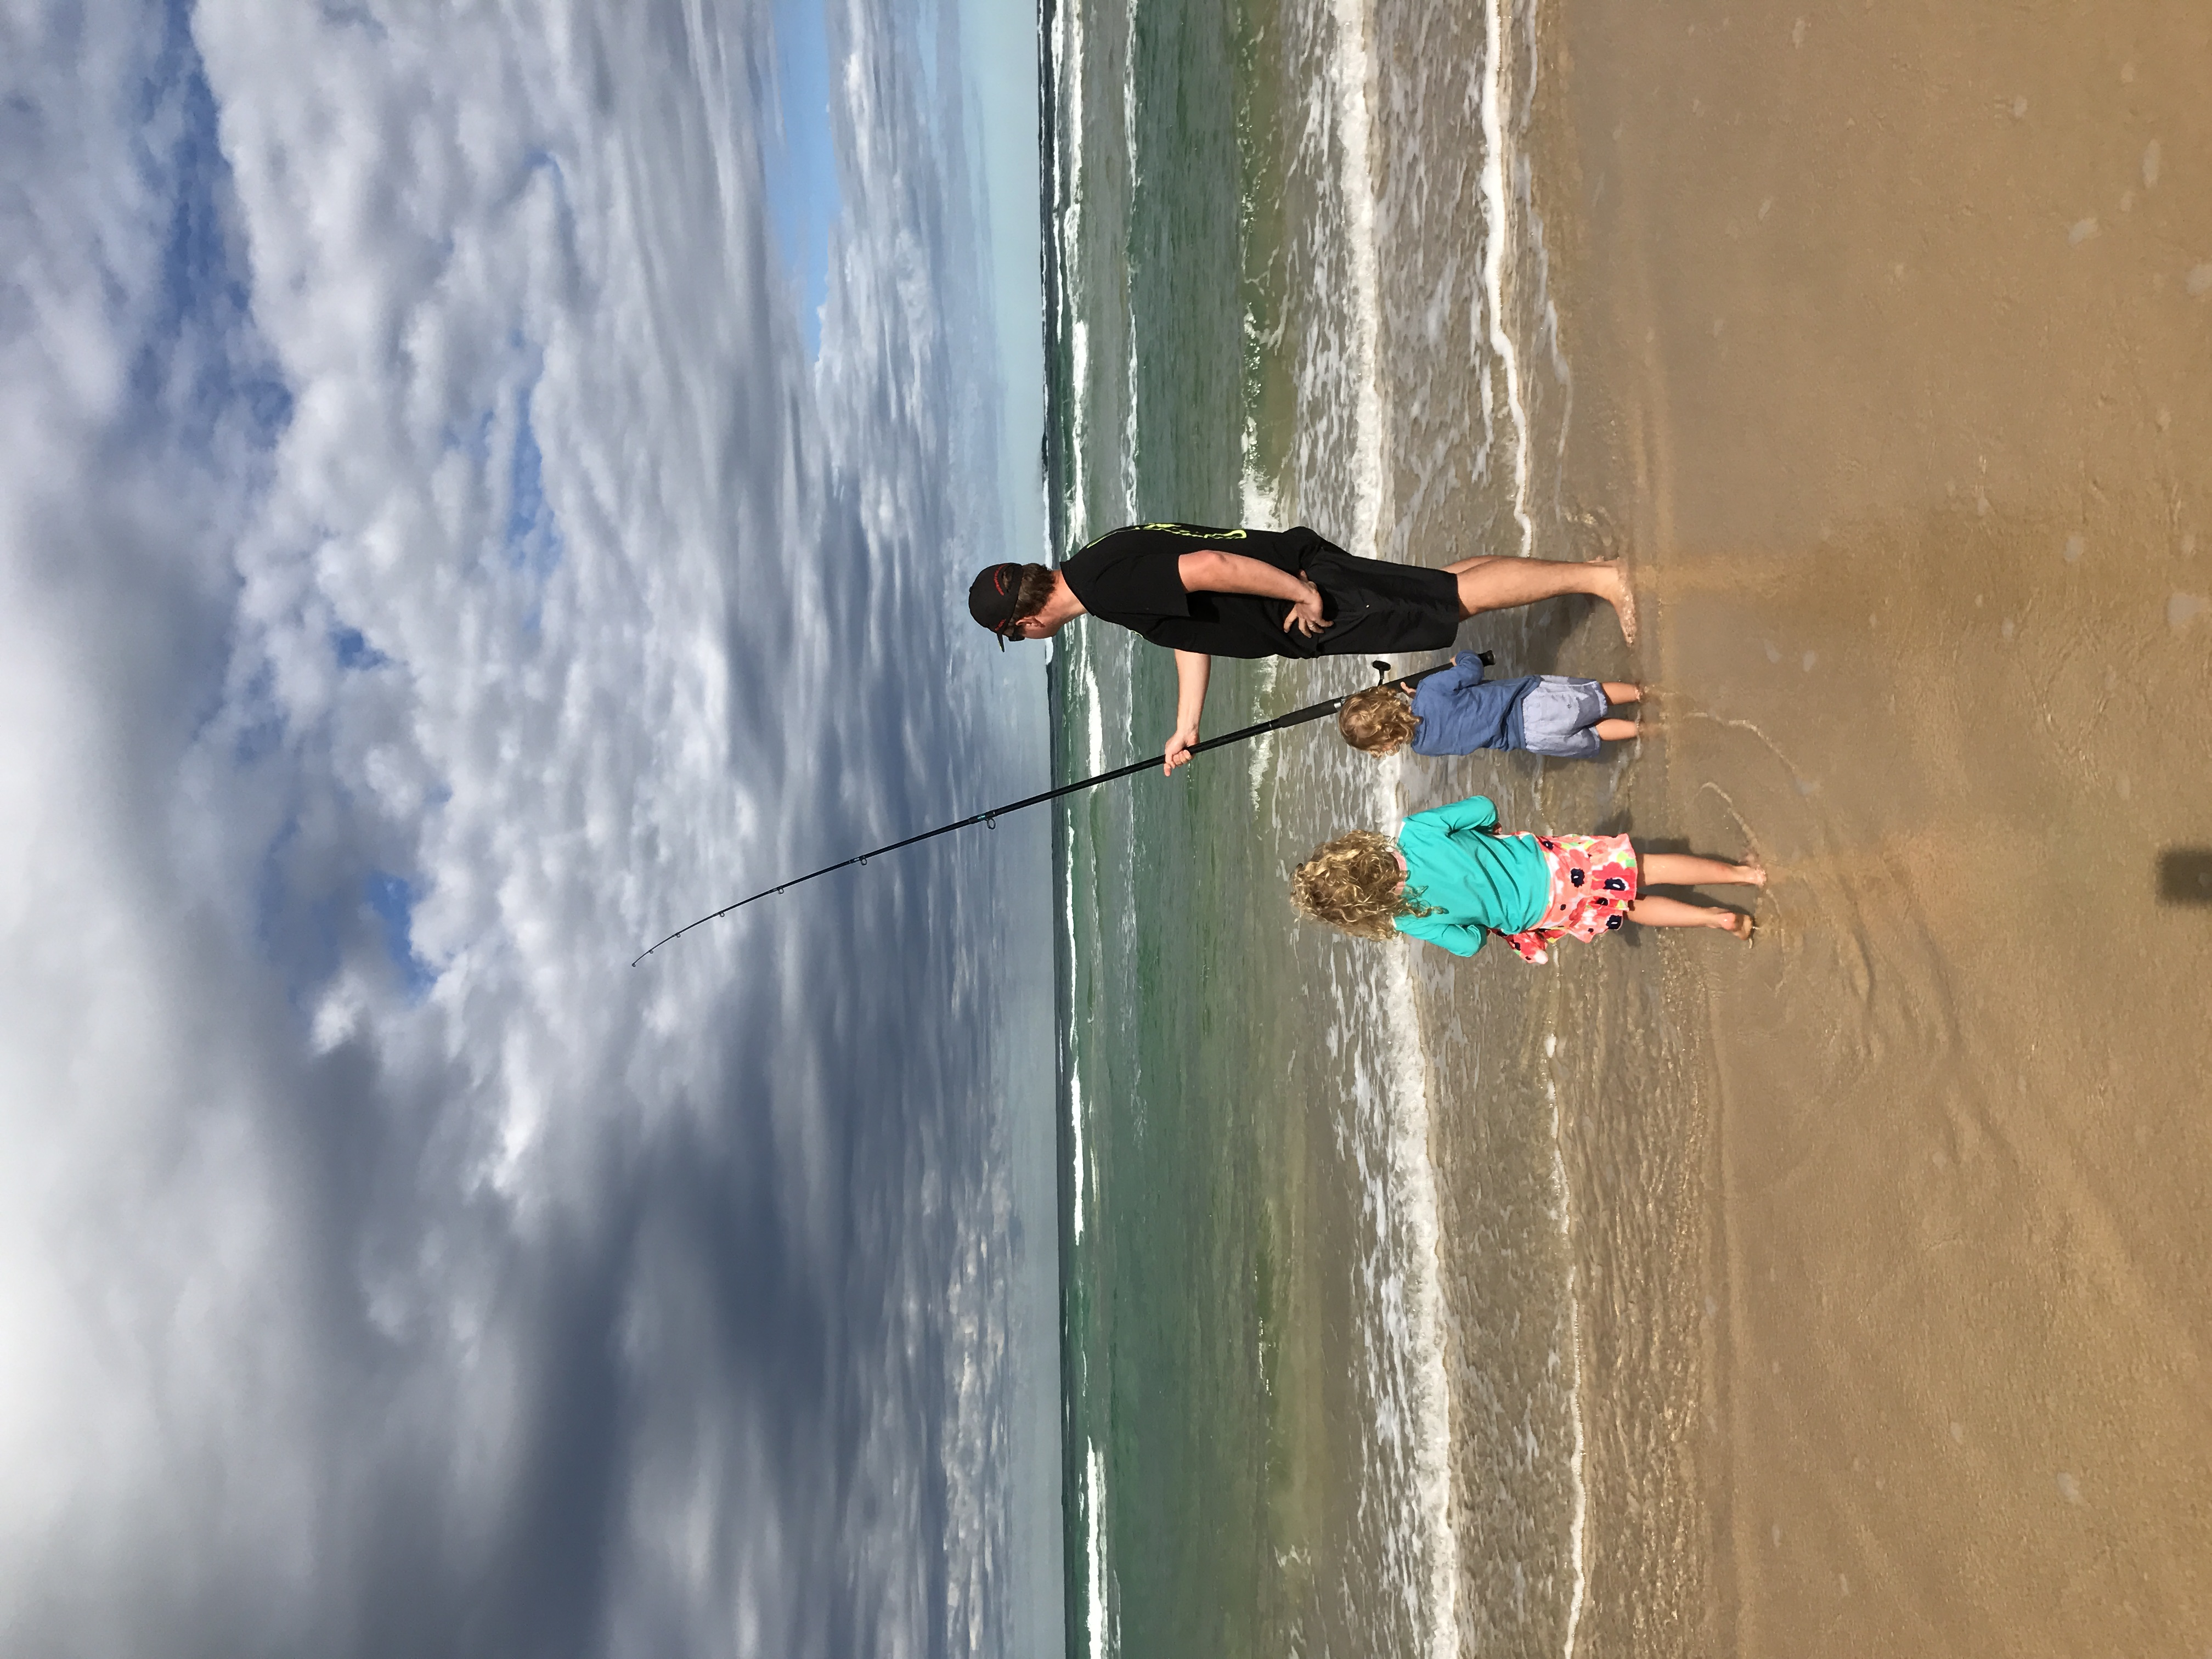 Fishing on 75 Mile Beach